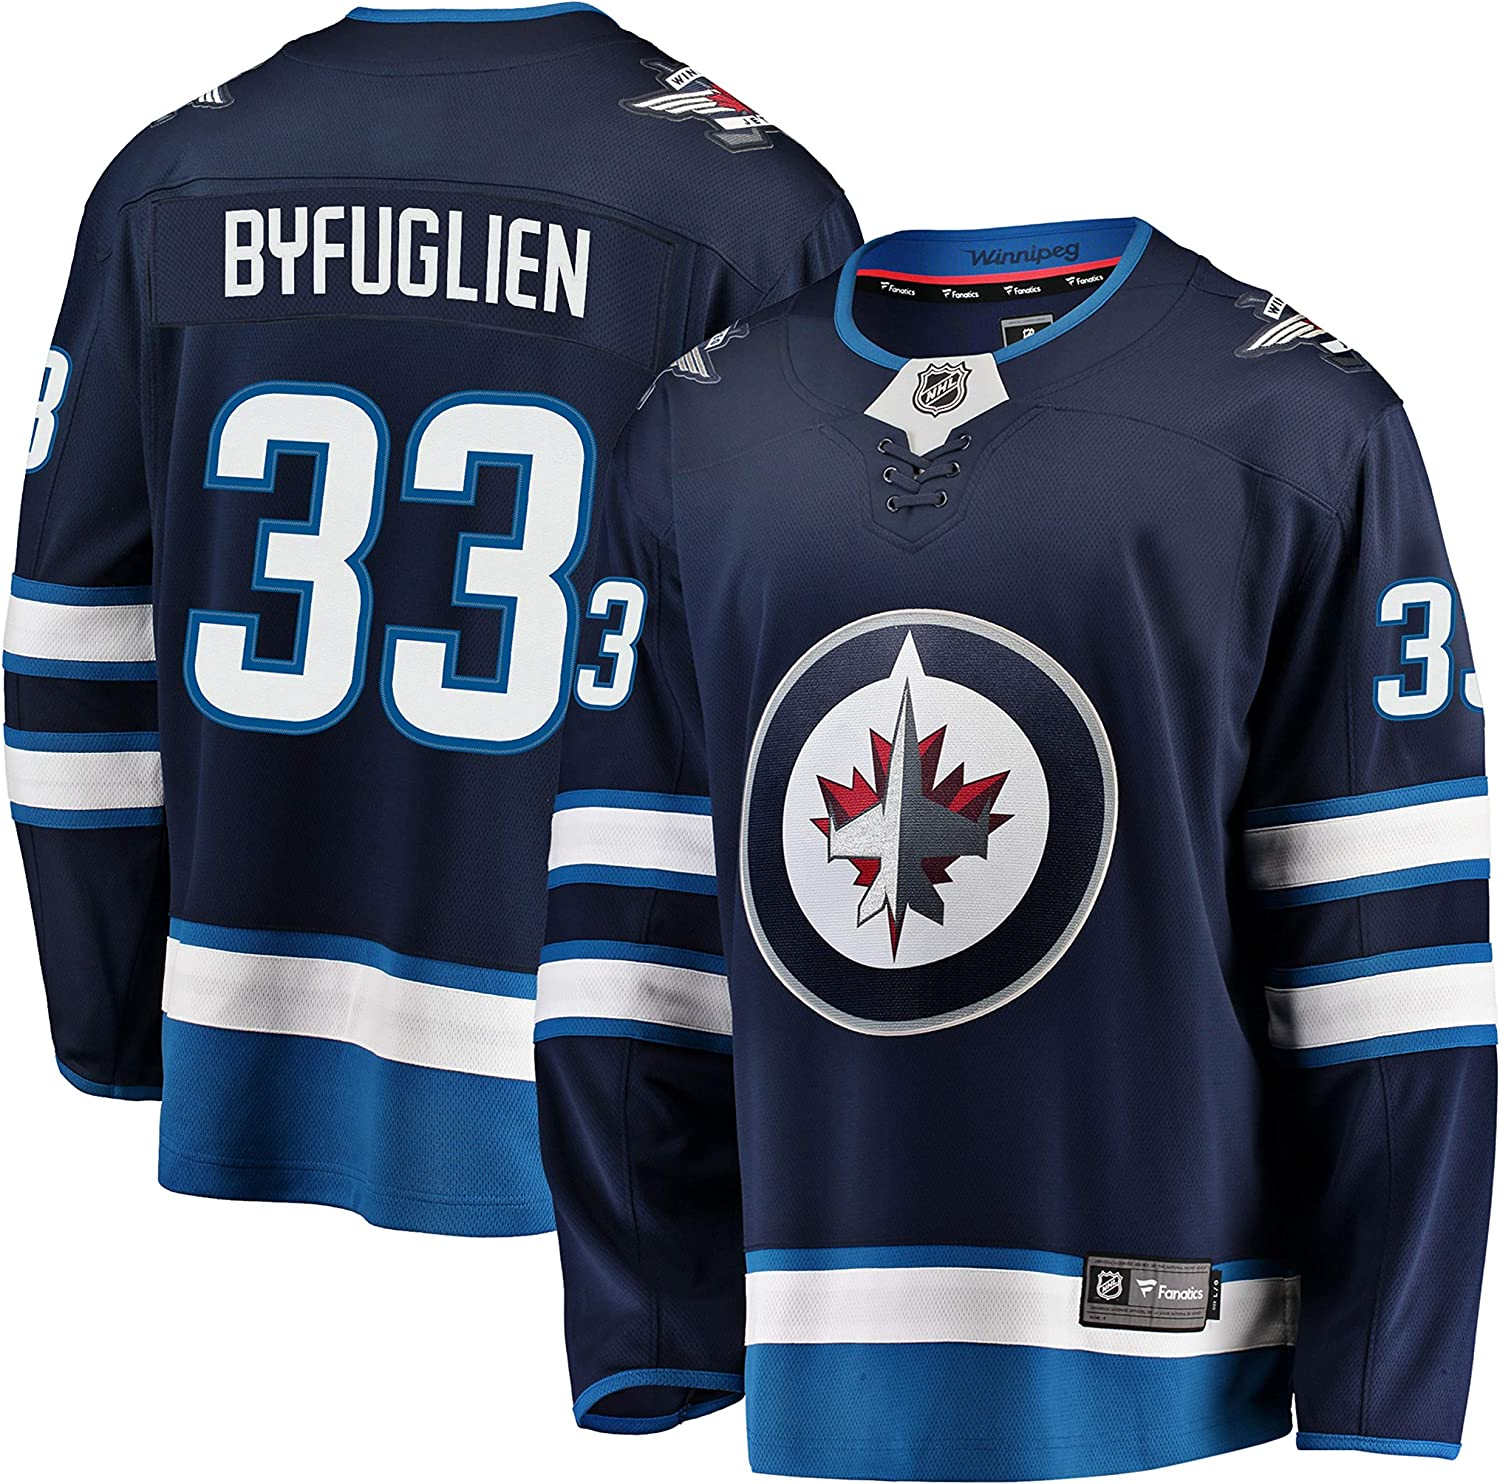 76d31d8a Byfuglien Winnipeg Jets NHL Fanatics Breakaway Home Jersey Dustin ...